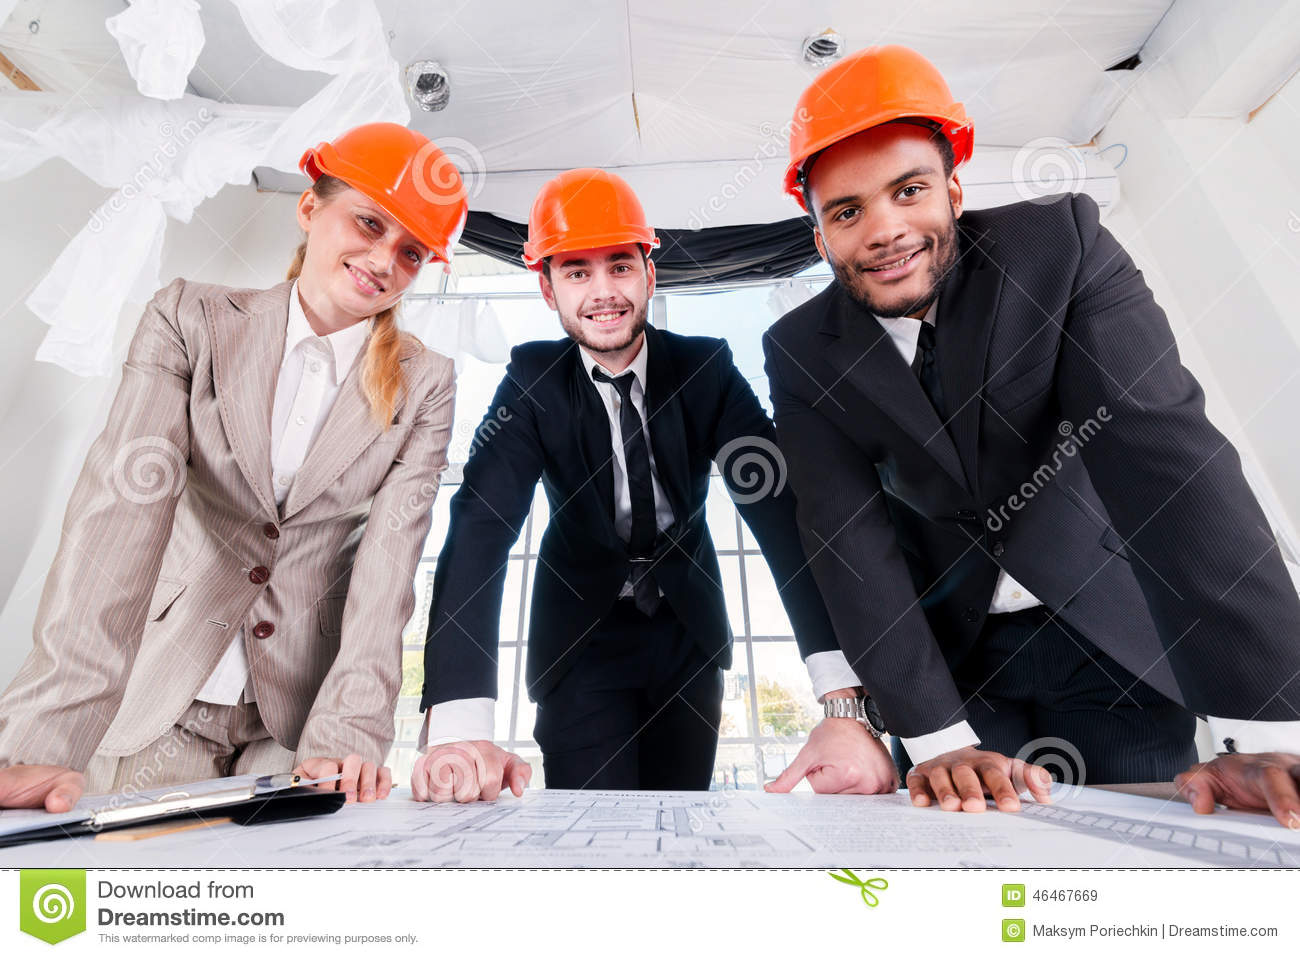 Architects of the drawings. Three businessmеn architect